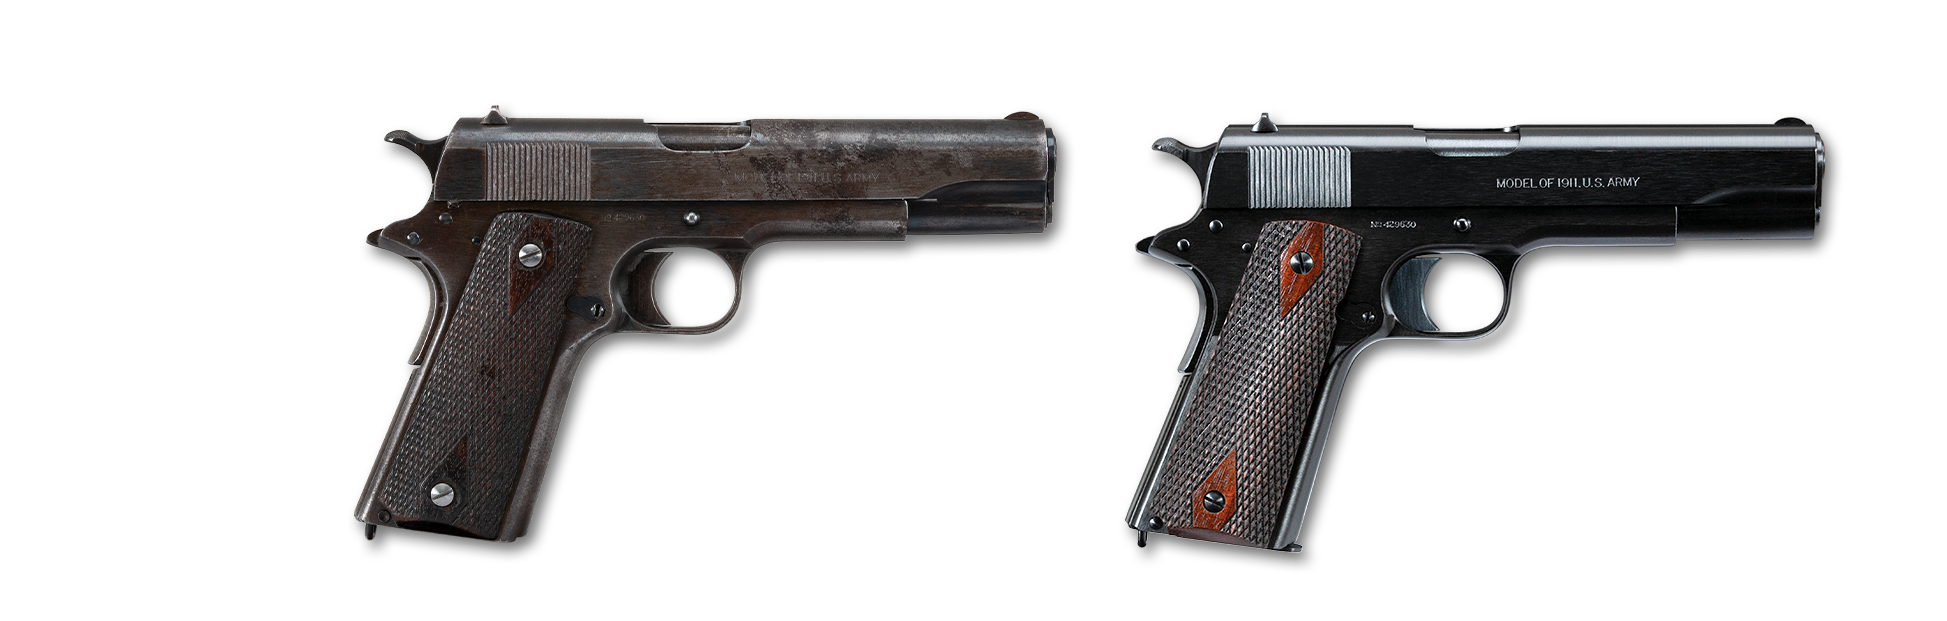 Photo of a Colt Super Match .38 Super Automatic pistol, both before and after restoration by Turnbull Restoration of Bloomfield, NY